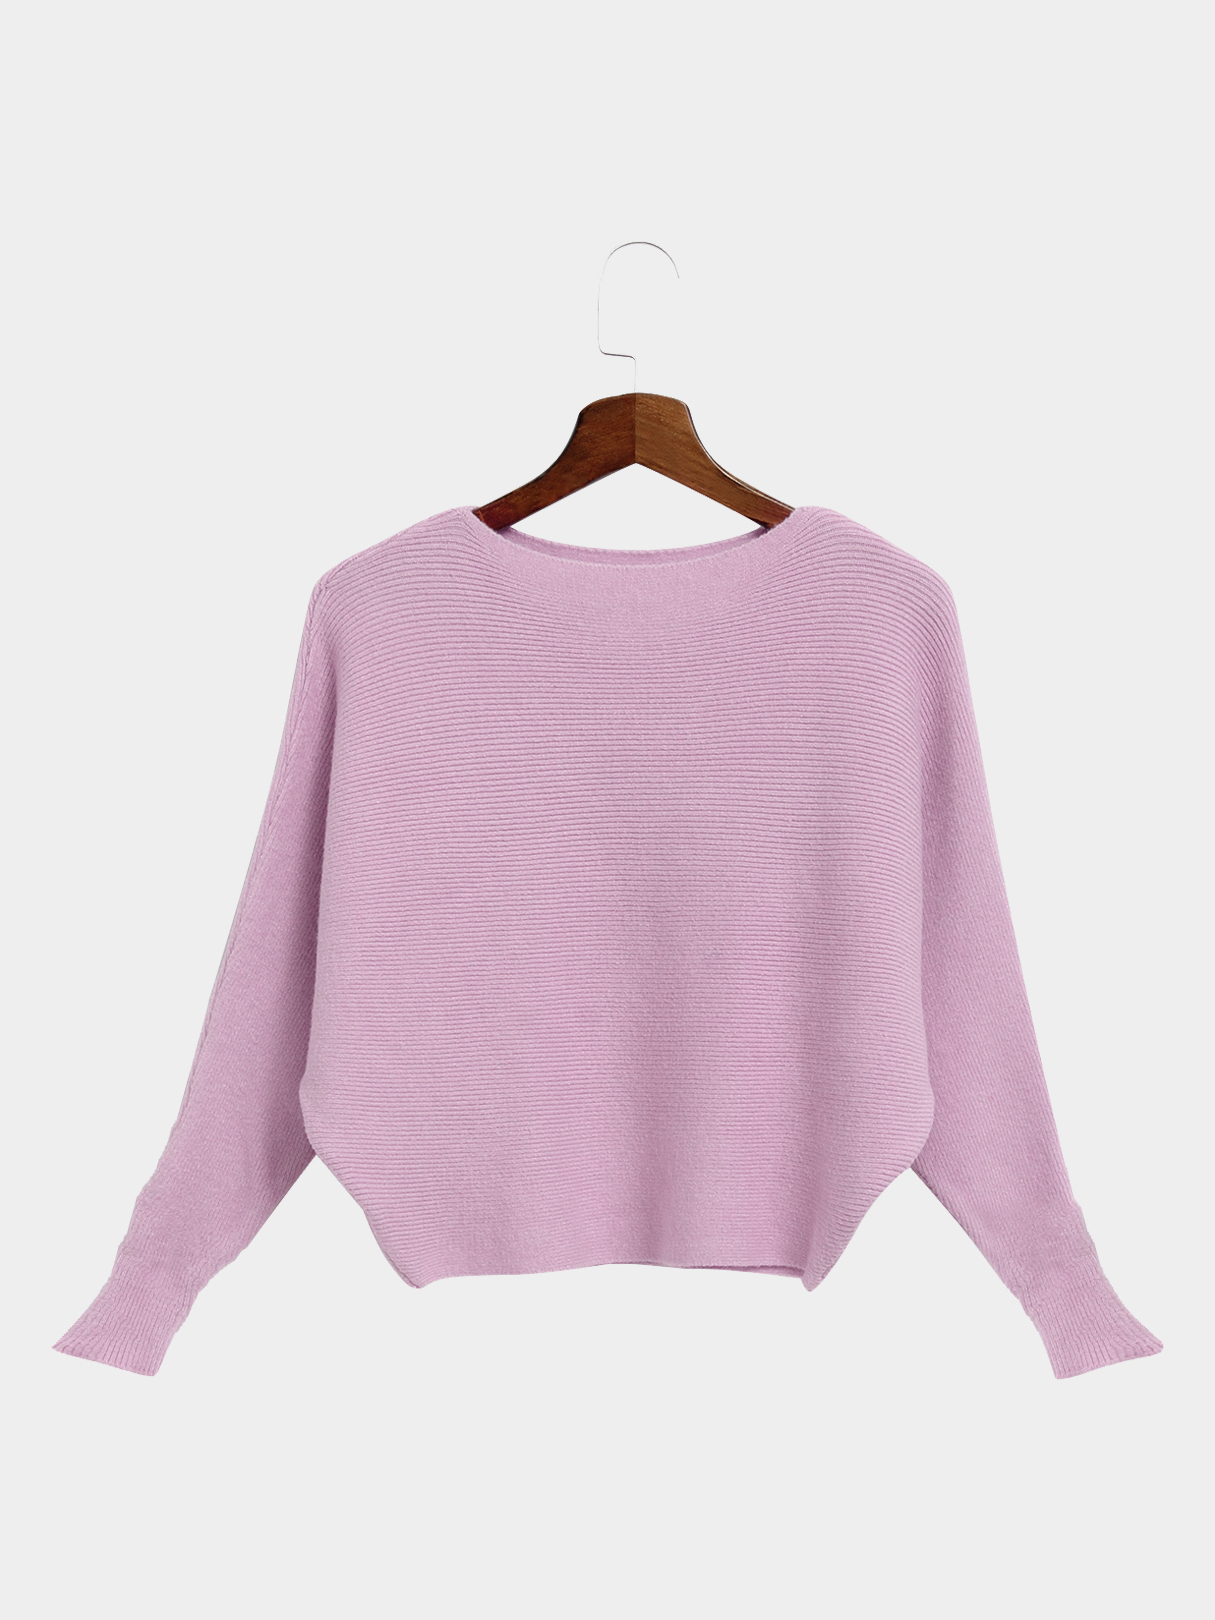 Pink Sexy Pullover Bat Sleeves Loose Jumper